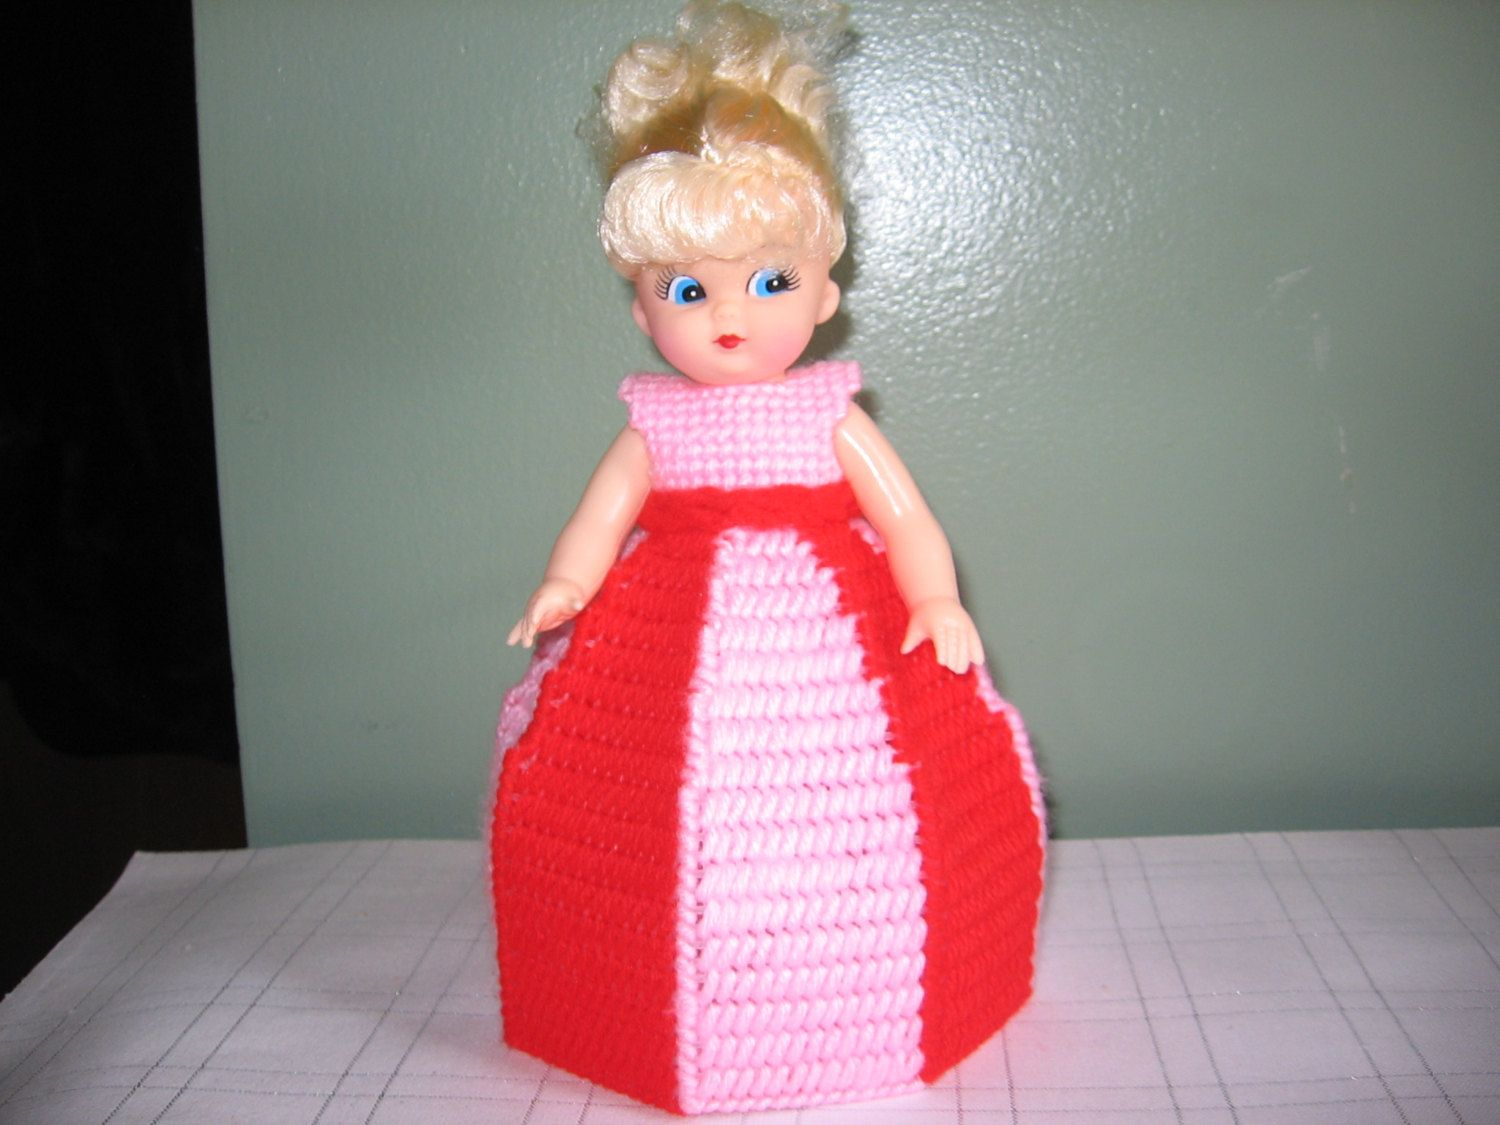 Red/Light Pink Collectible Doll - use for decoration or Air Freshner!! by CreationsbyAMJ on Etsy #airfreshnerdolls